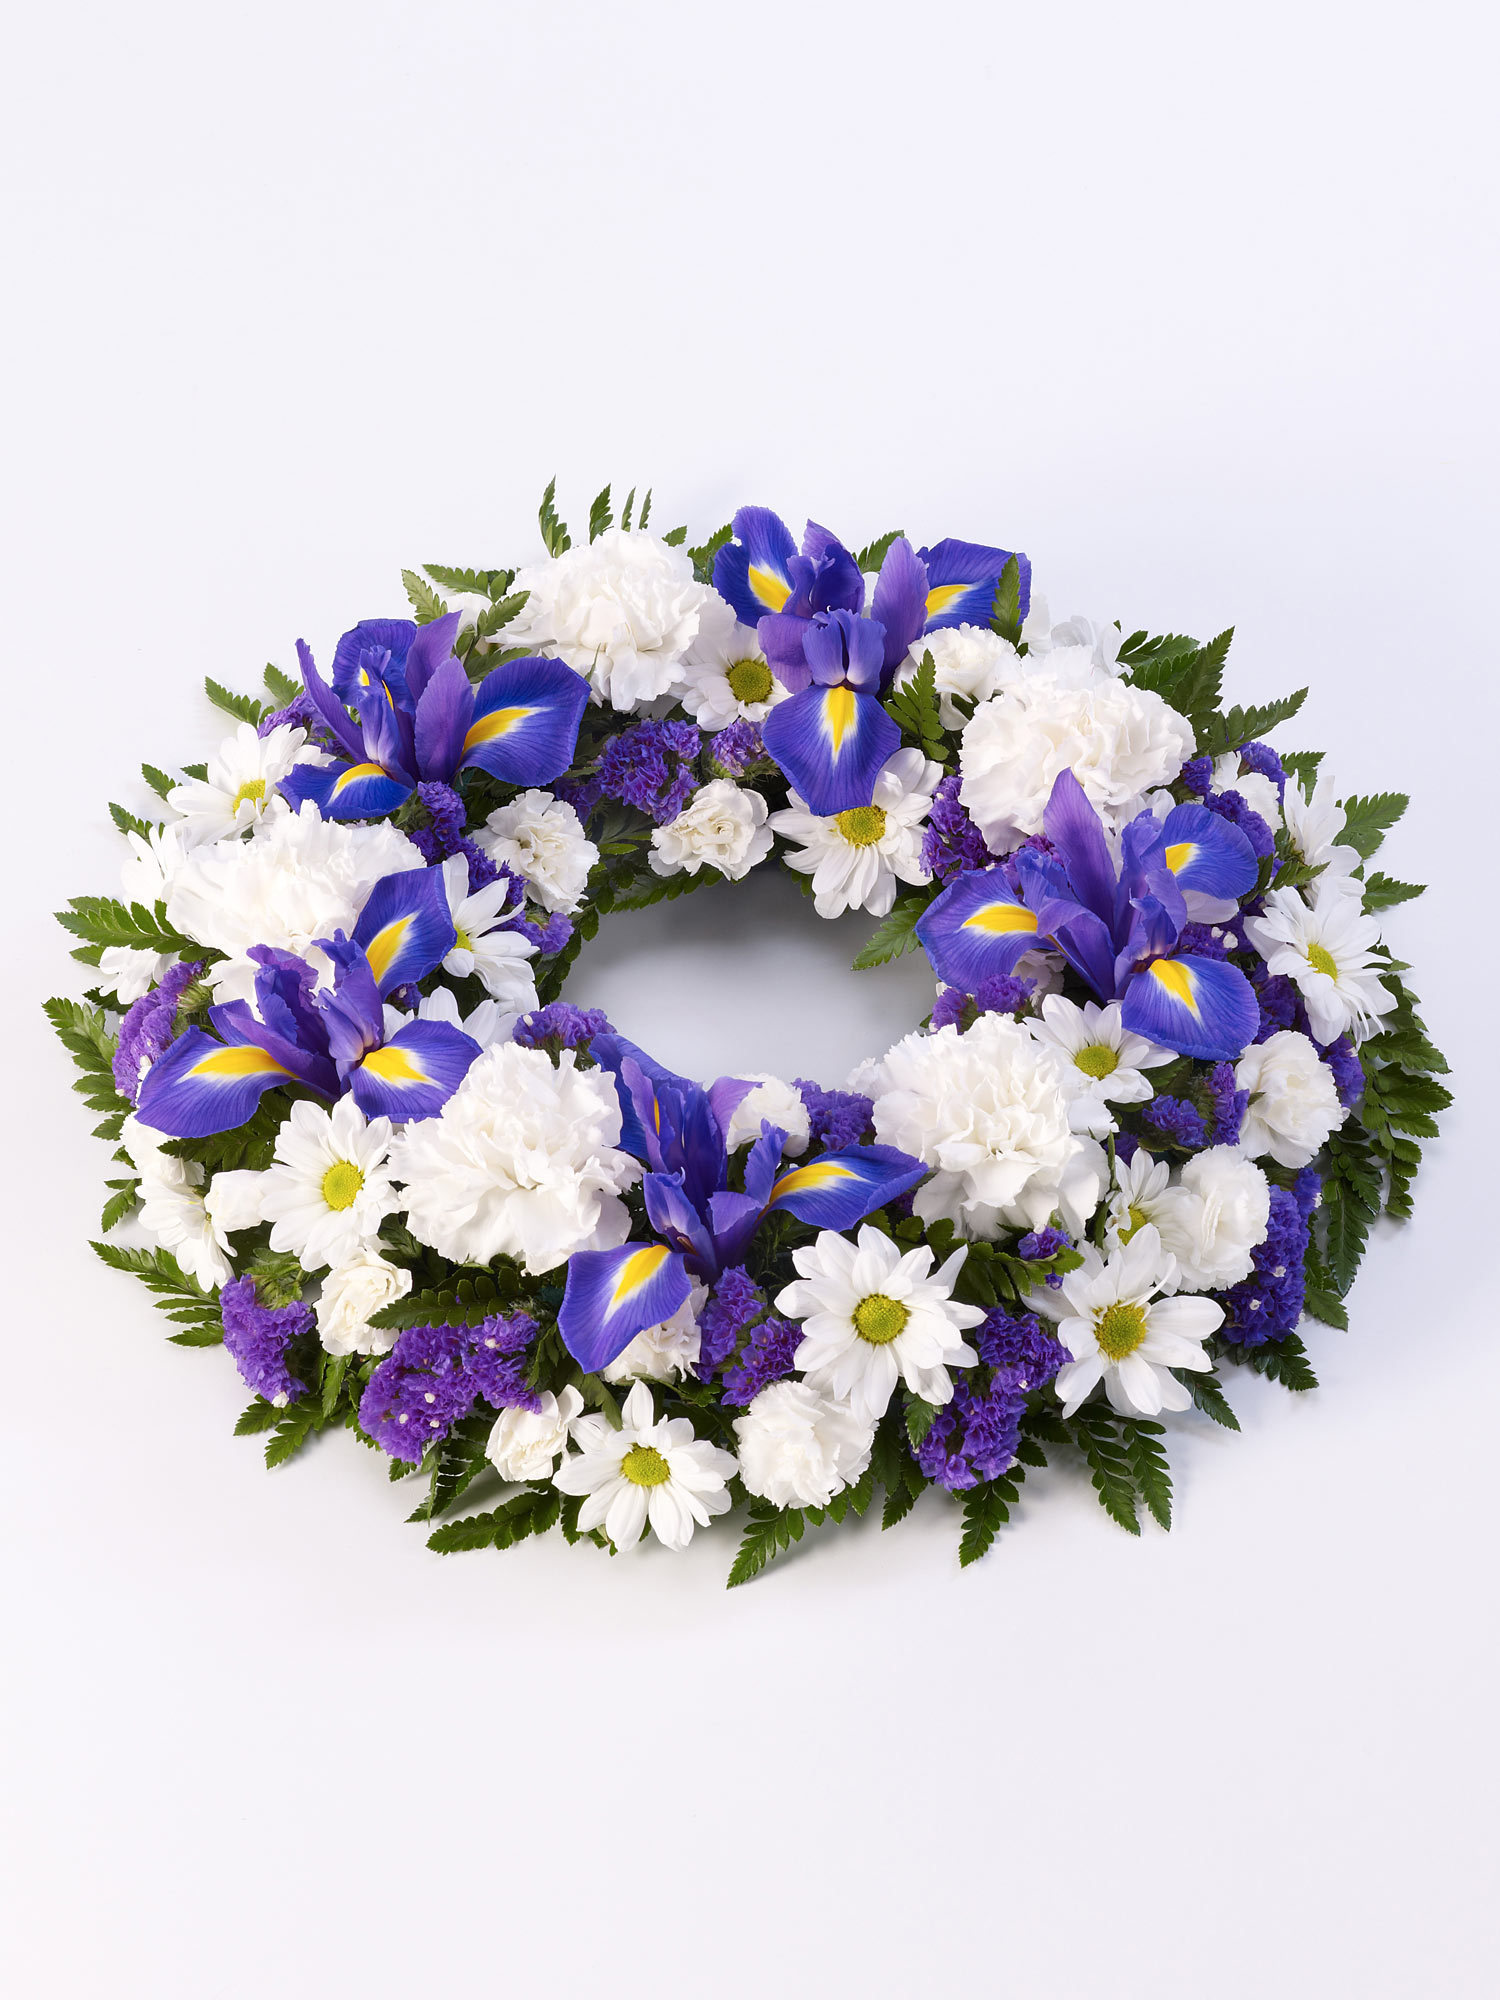 A collection of blue and white flowers forming a wreath